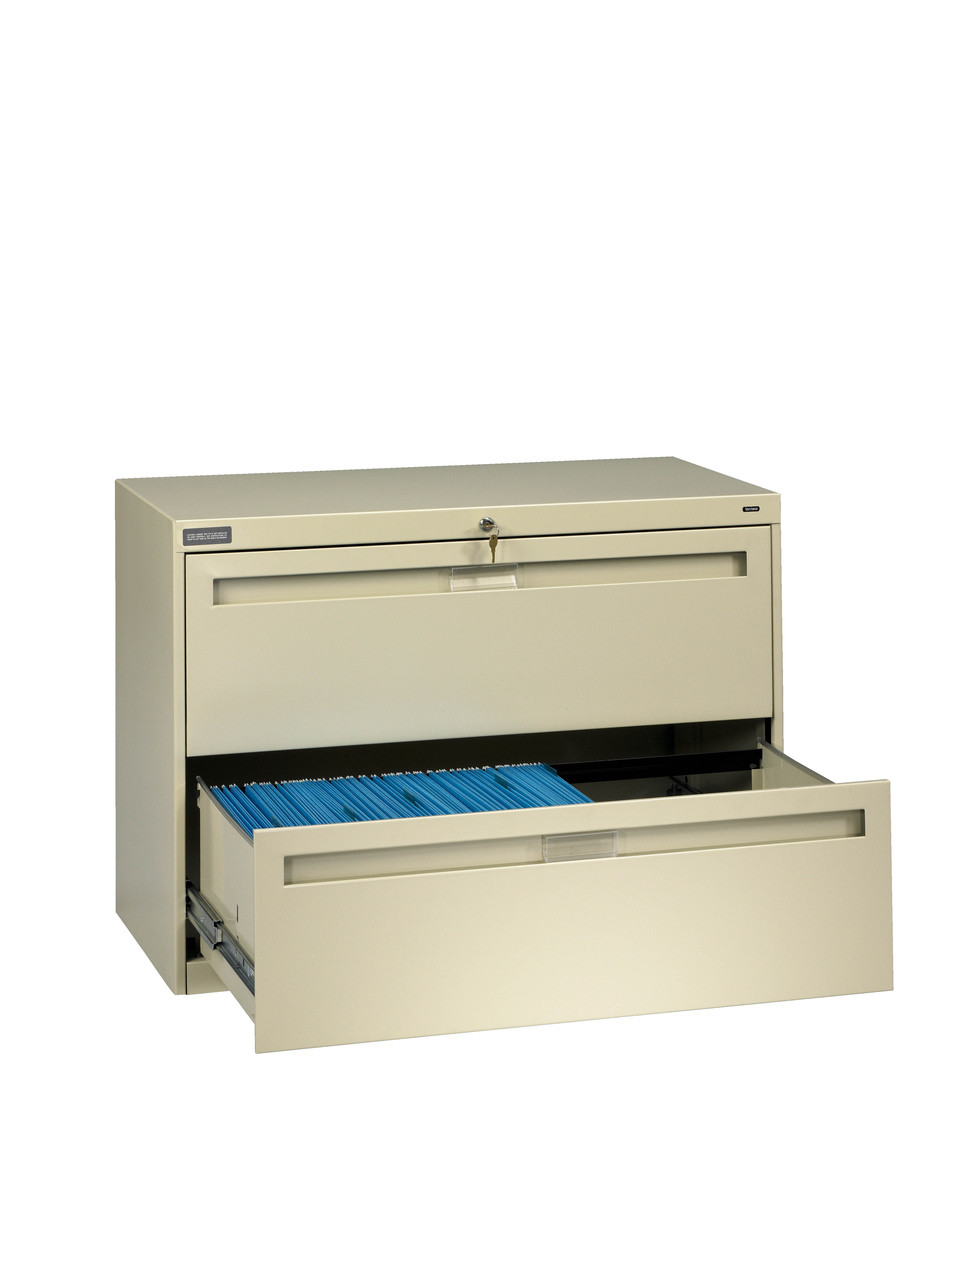 Tennsco Lpl3624l21 Retractable 2 Drawer Lateral File 36 X 18 X 28